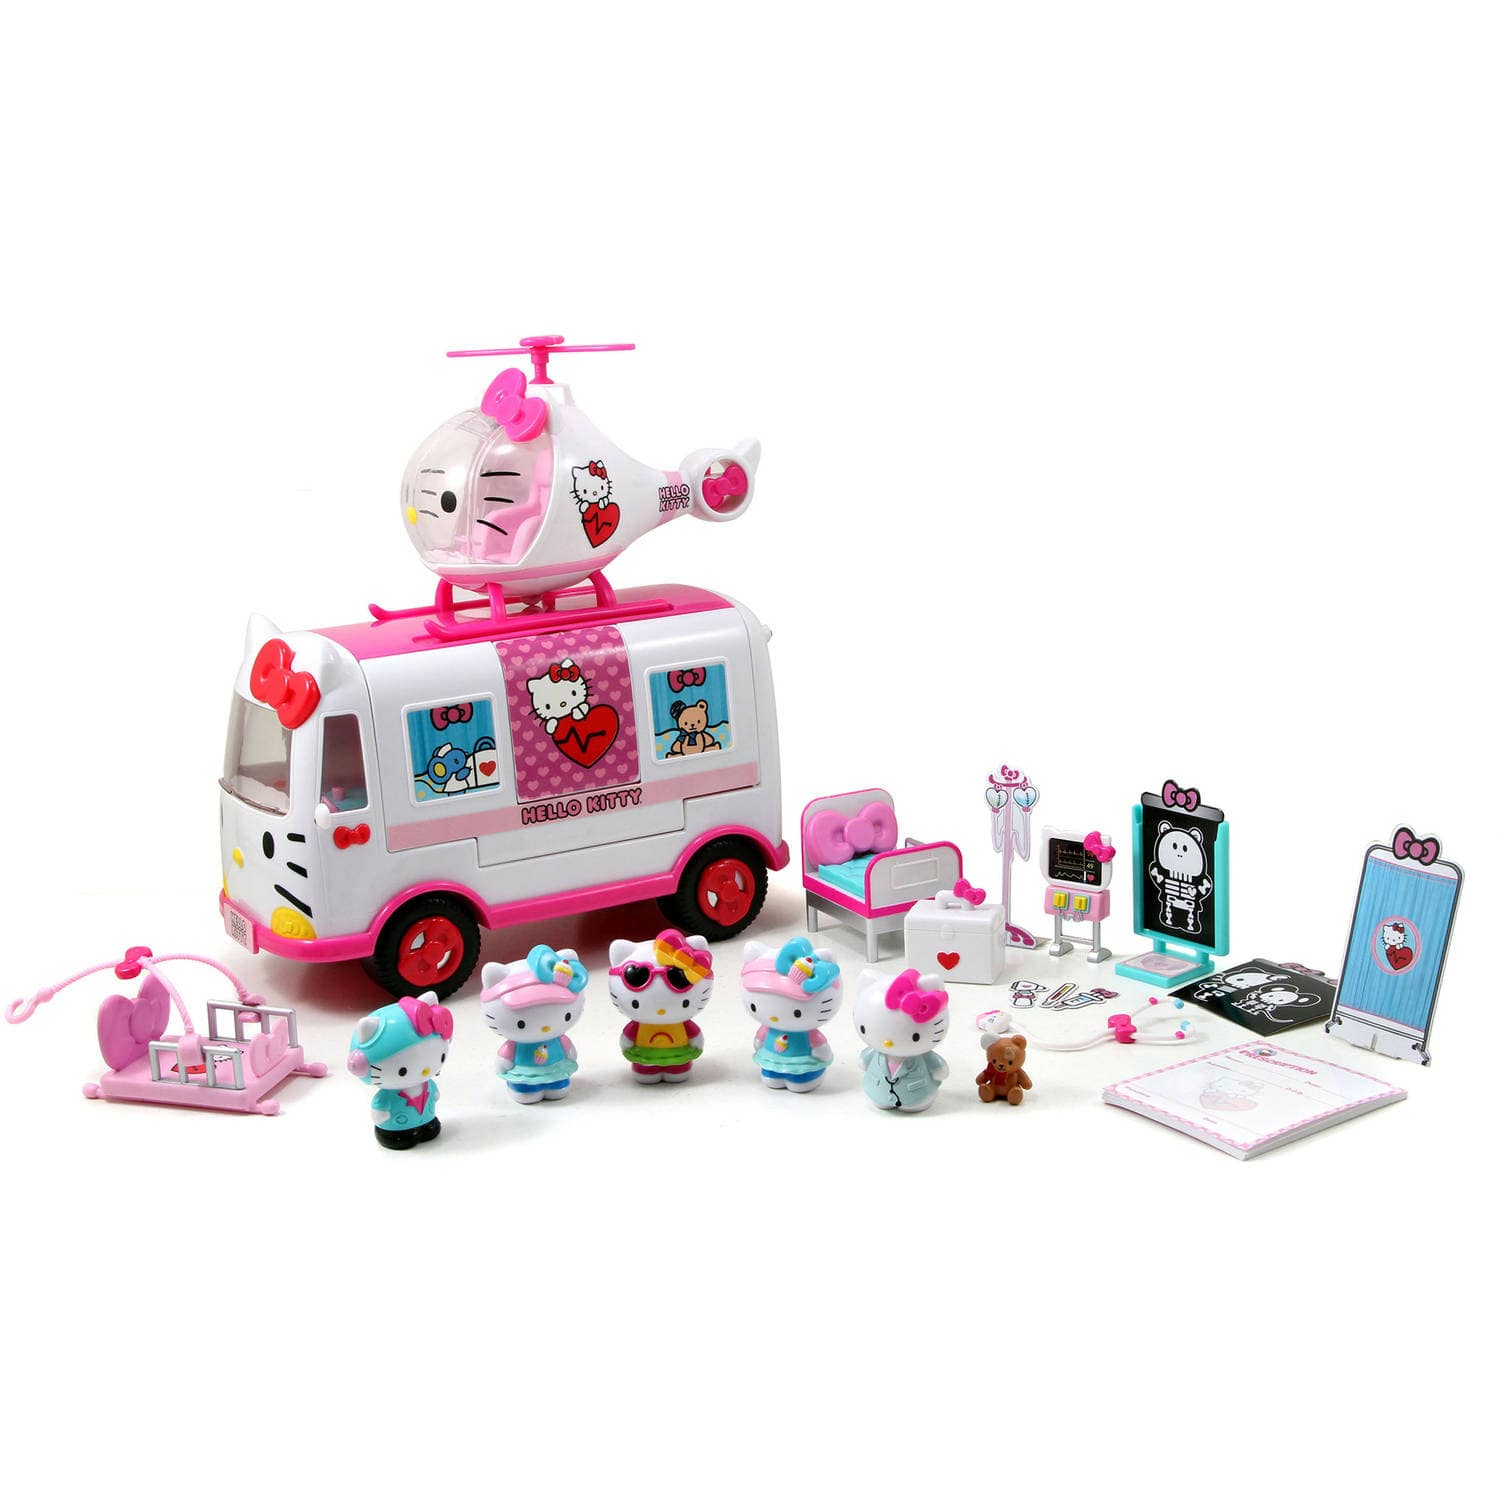 Hello Kitty Rescue Set (Helicopter & Ambulance Playset, Figures & Accessories) $19.99 - Walmart / Amazon